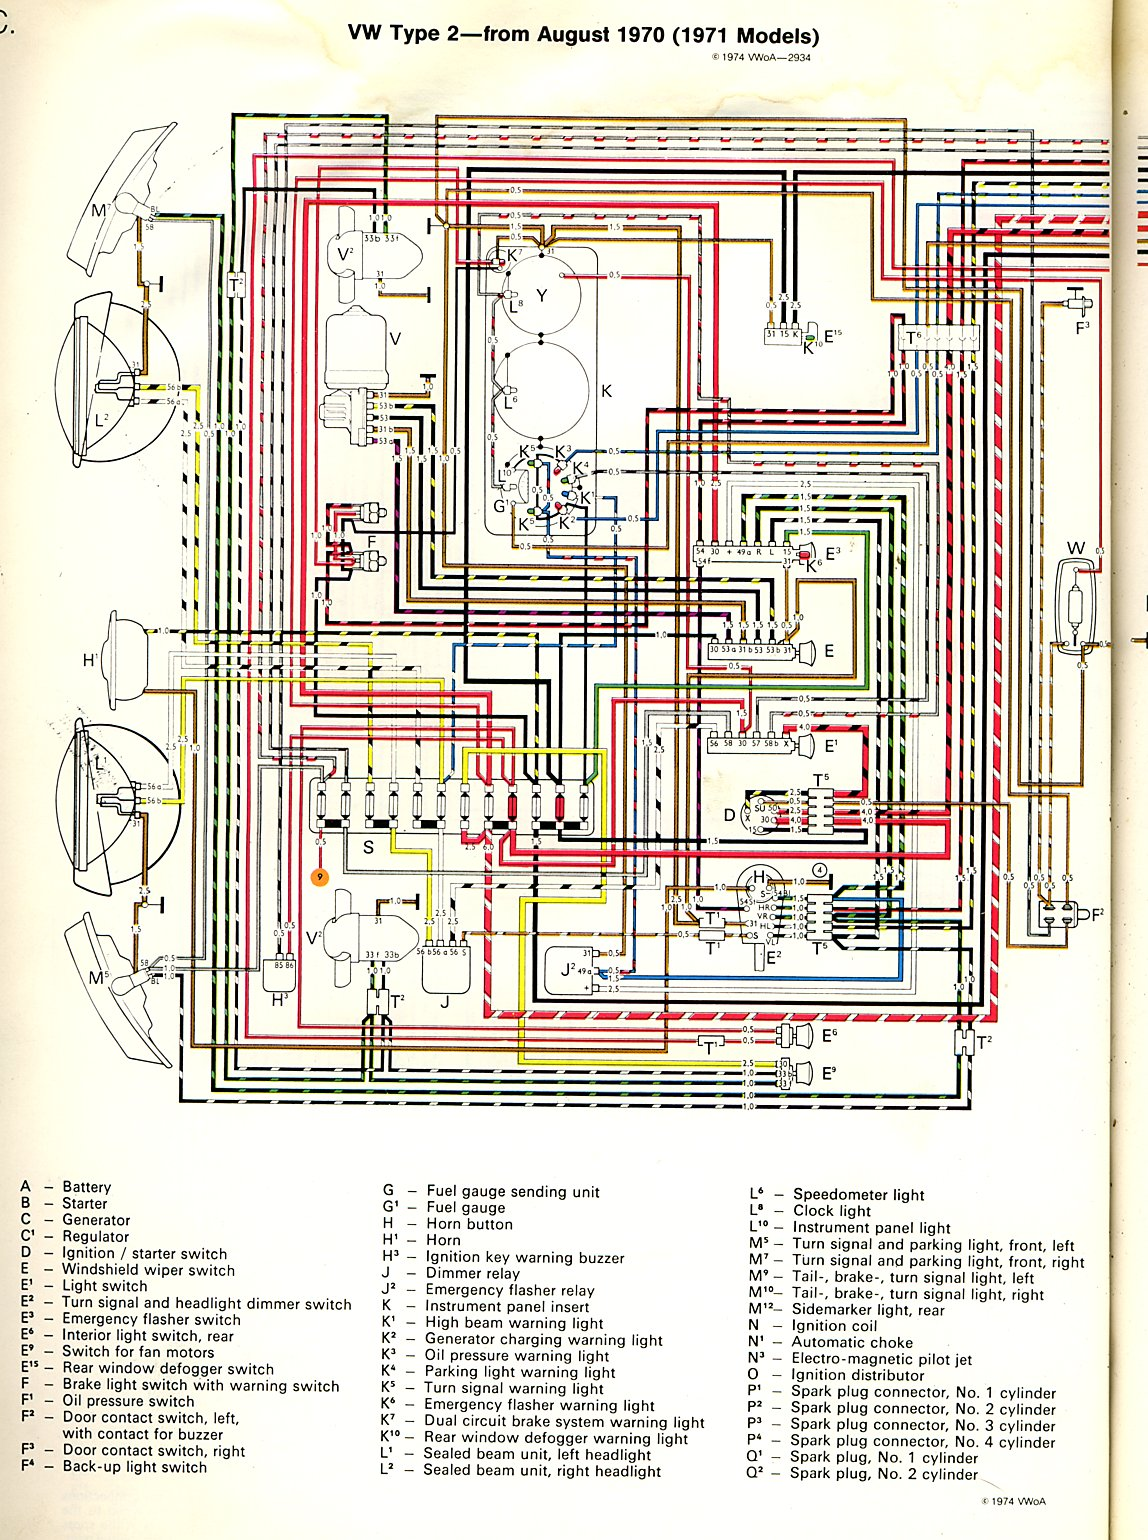 Type 2 Wiring Diagrams 1951 Ford Ignition Switch Diagram Printable